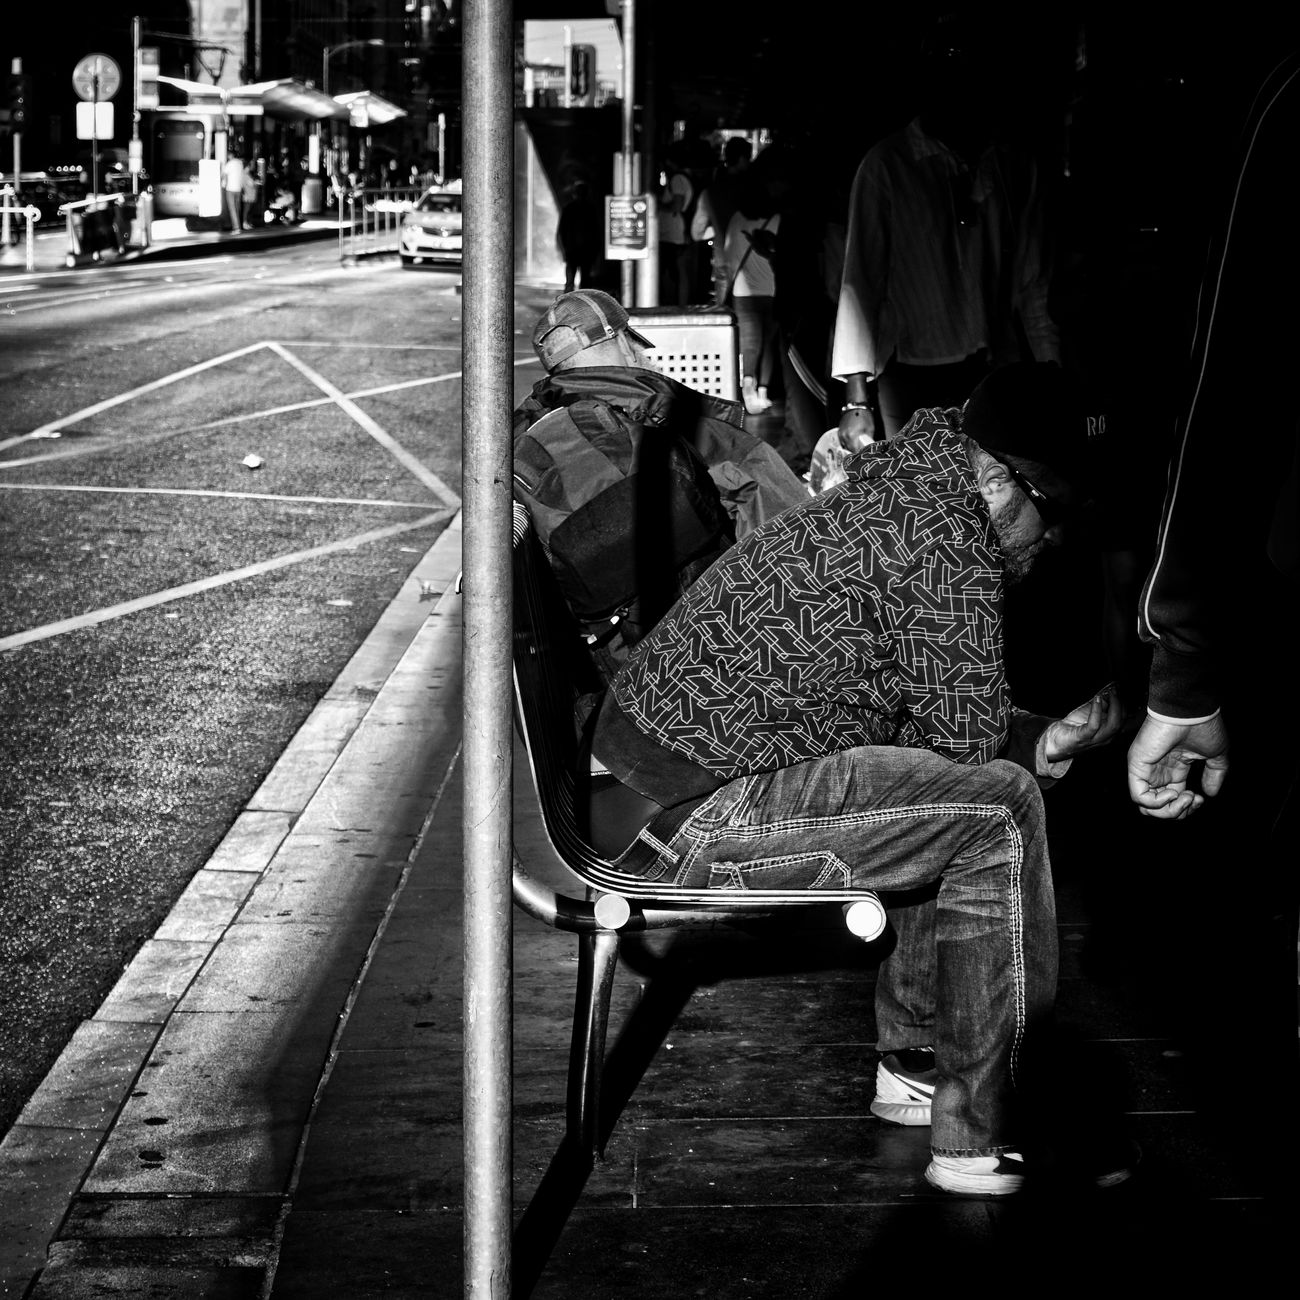 While the city awakes, some await... Sitting Adults Only Real People People Day Outdoors Eye4photography  Bnwphotography Bnw EyeEm Best Shots - Black + White EyeEm Gallery EyeEm Best Shots Monochrome Blackandwhite Photography Blackandwhite Black And White Black & White Sony A6000 Close-up Light And Shadow Bnw_globe Bnw_society Bnw_captures Bnw_worldwide Urban